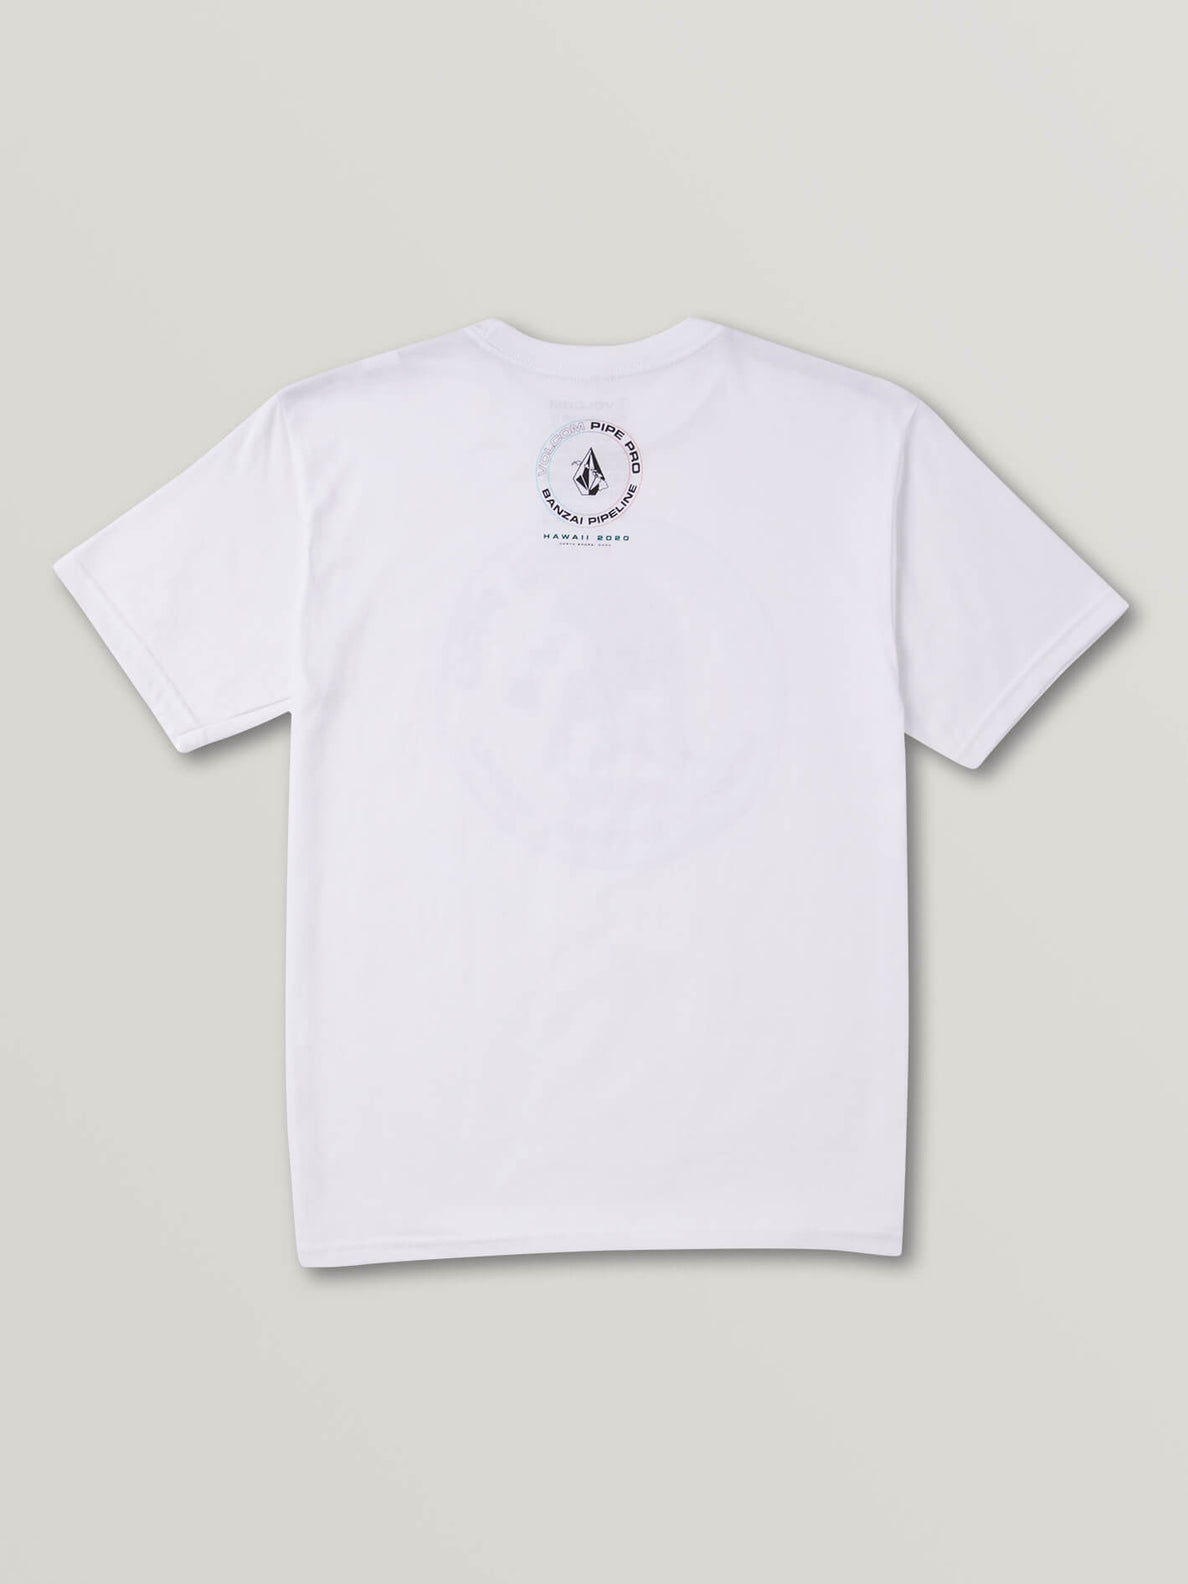 Big Boys Vpp Crest Short Sleeve Tee - White